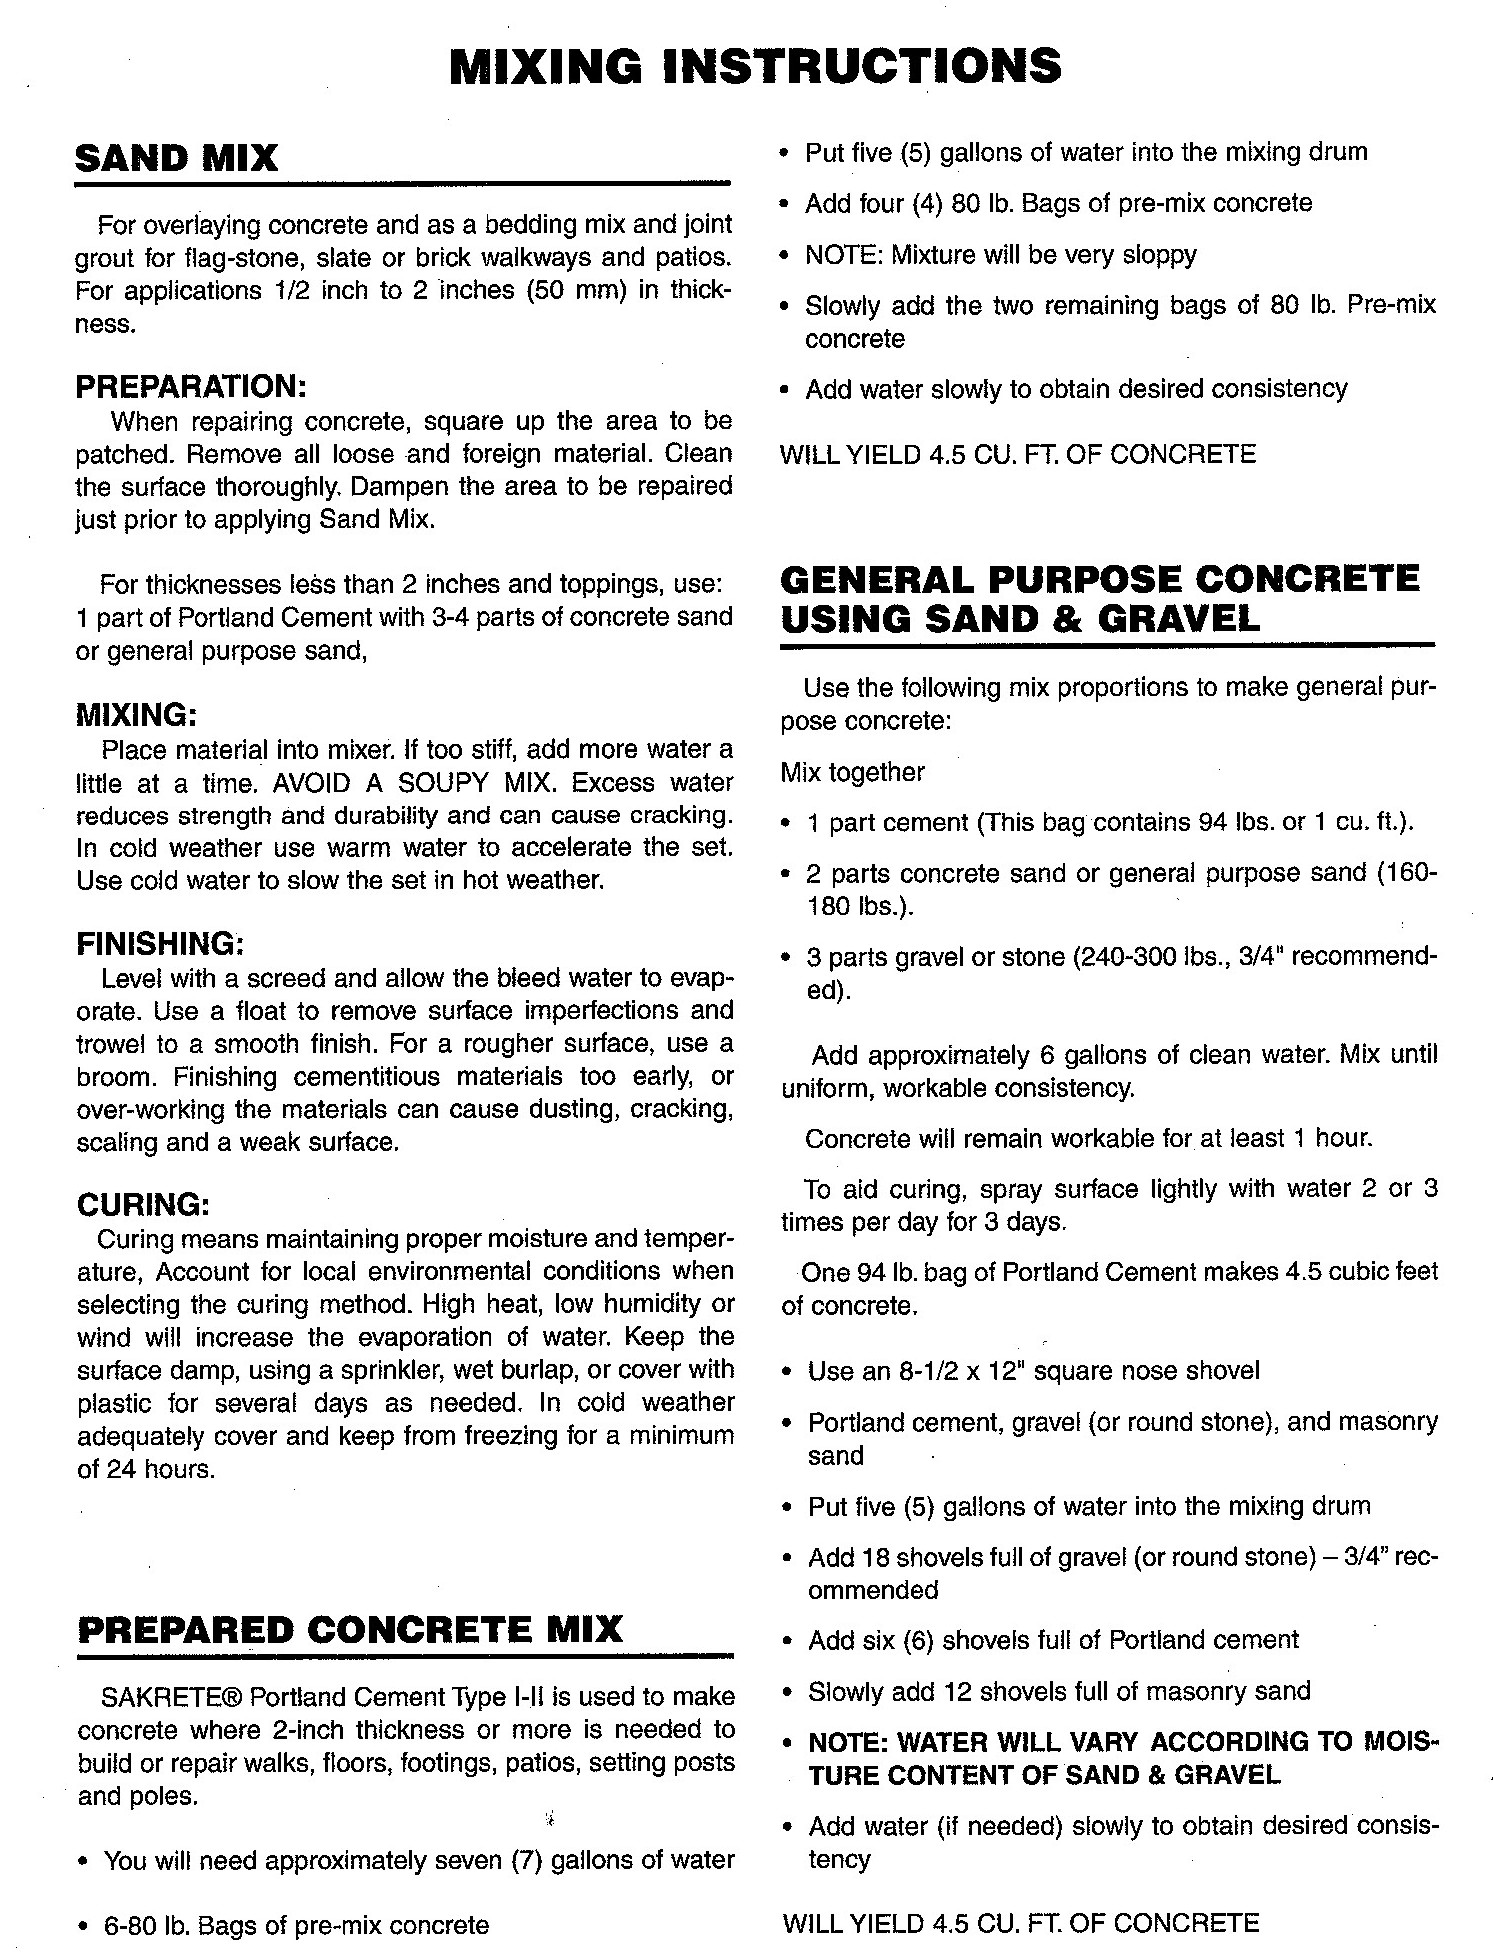 SS-590 Mixing Instructions